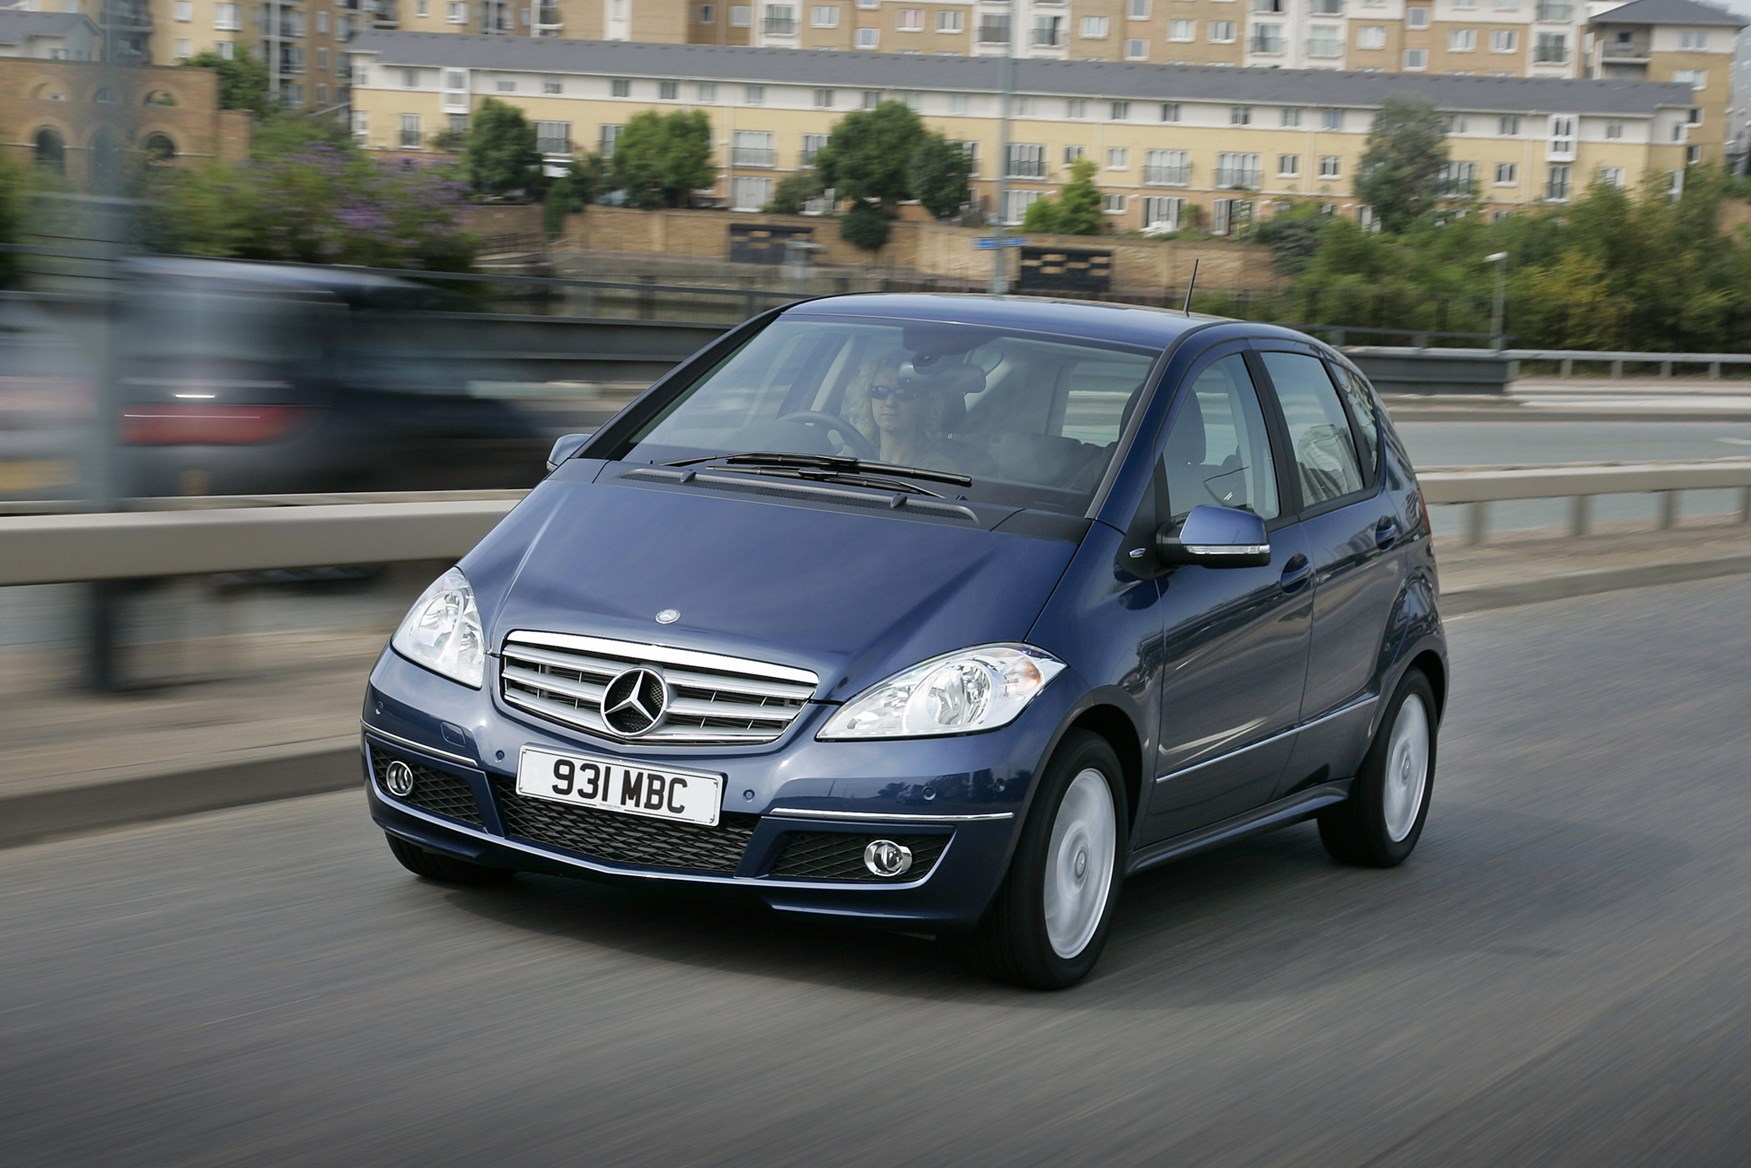 Mercedes benz a class hatchback review 2005 2012 parkers for How much are mercedes benz